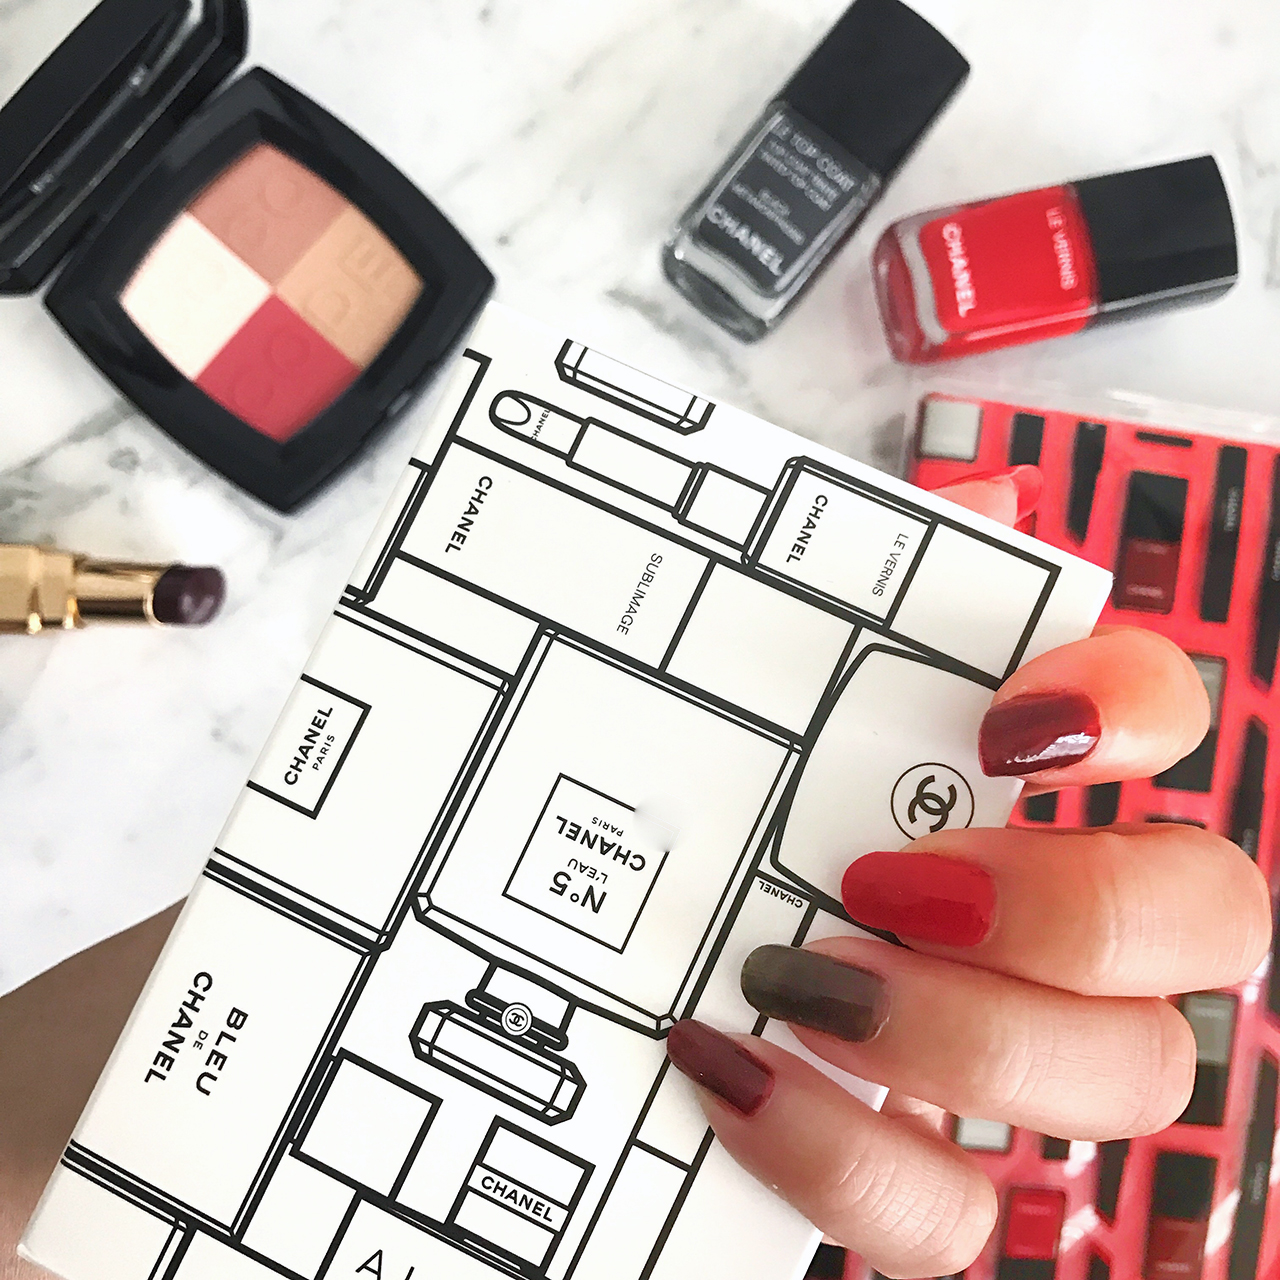 Chanel Coco Codes Le Vernis for SS17